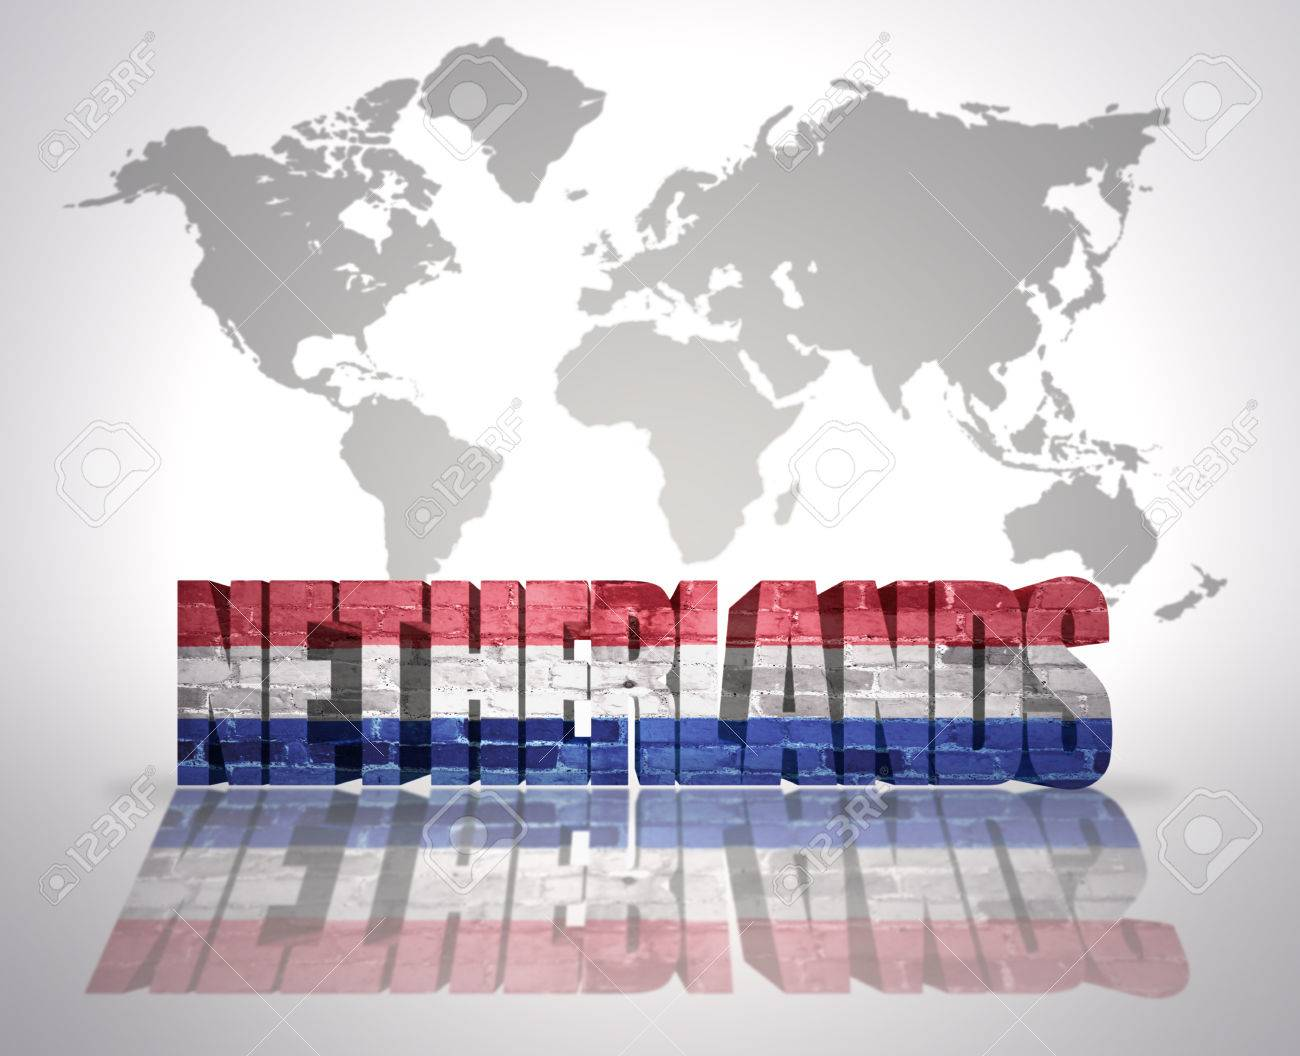 Word netherlands with dutch flag on a world map background stock stock photo word netherlands with dutch flag on a world map background gumiabroncs Images